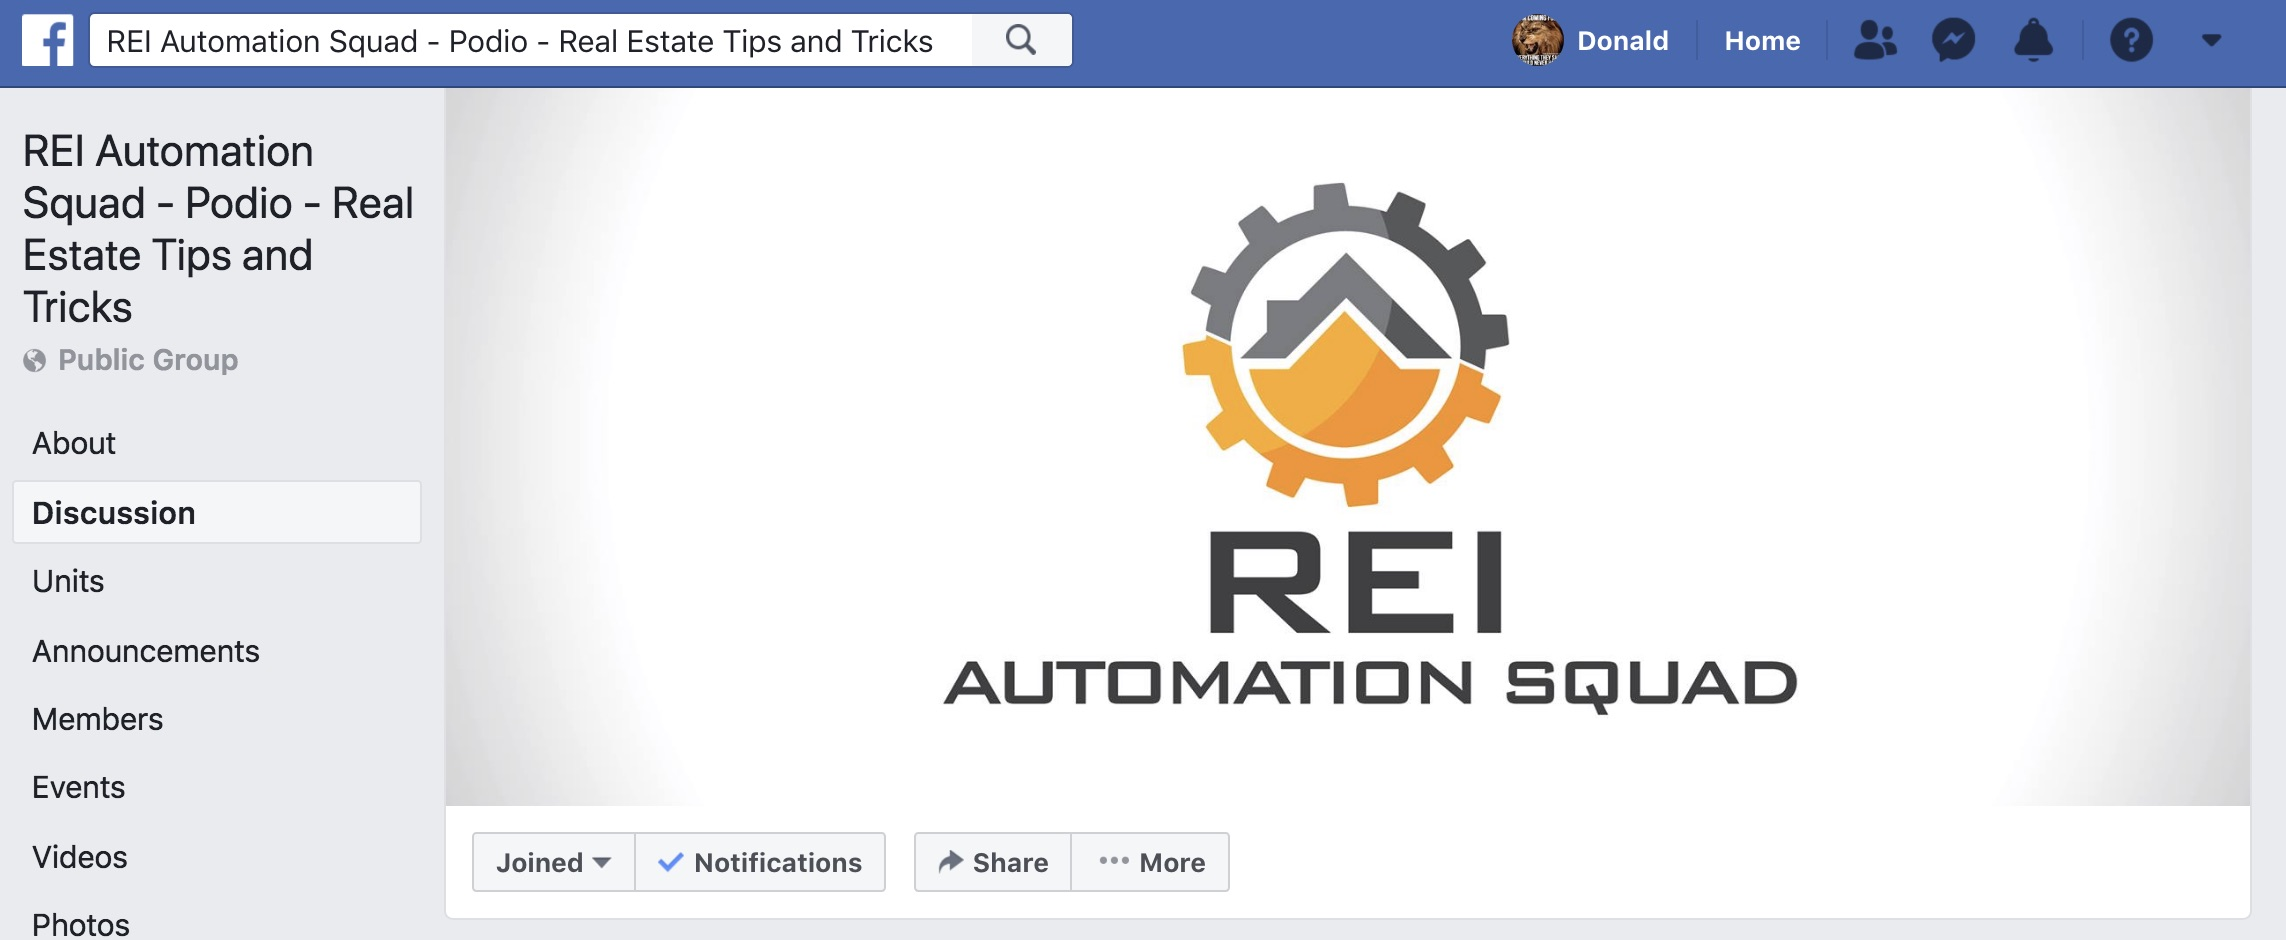 REI_Automation_Squad_-_Podio_-_Real_Estate_Tips_and_Tricks.jpg